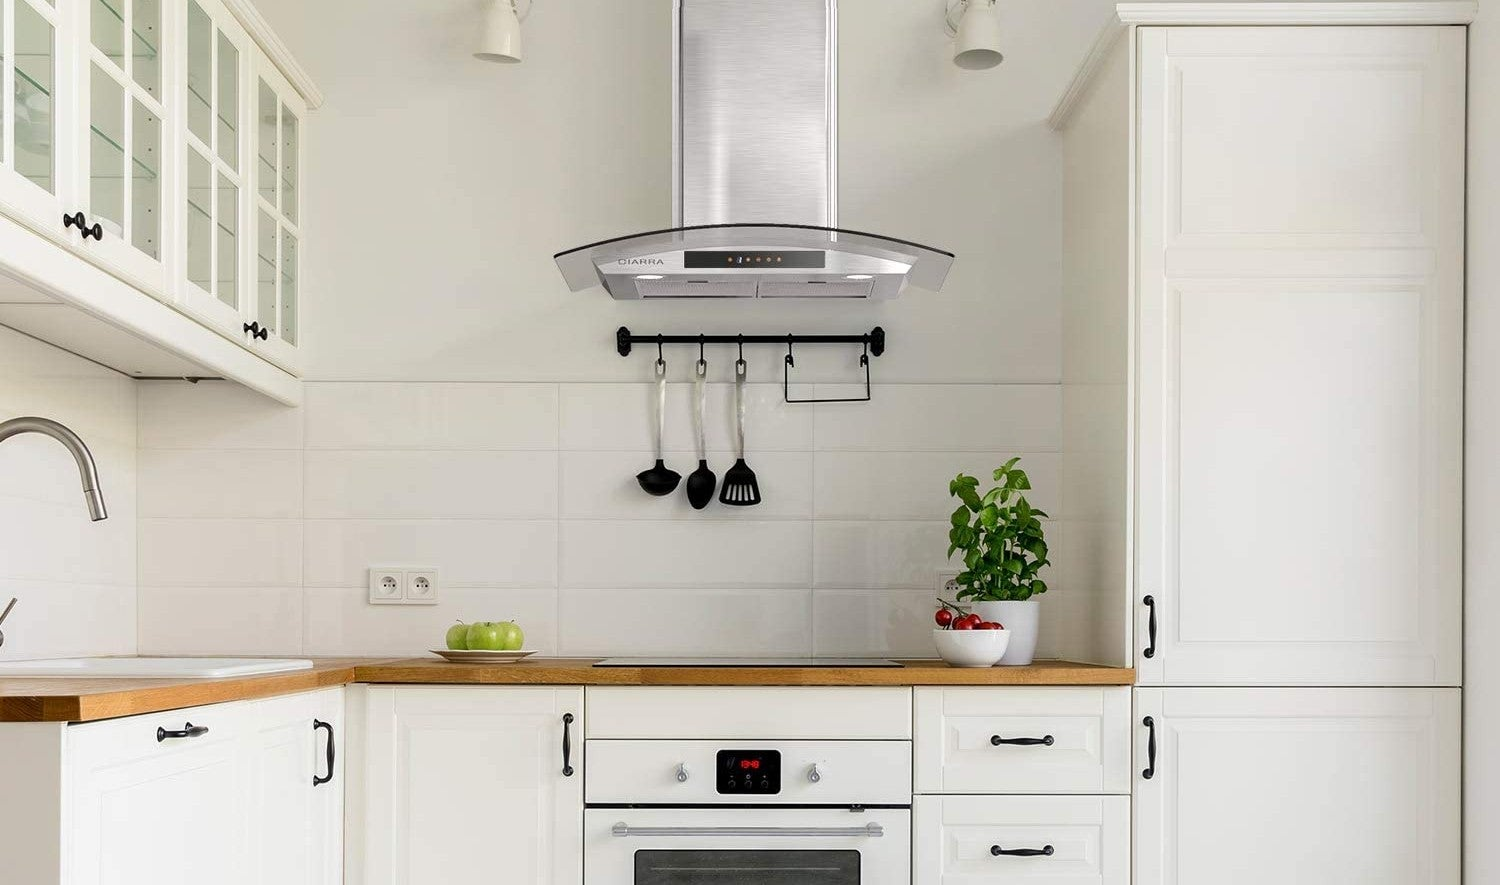 The Best Range Hoods In 2021 For Kitchen Ventilation Bob Vila